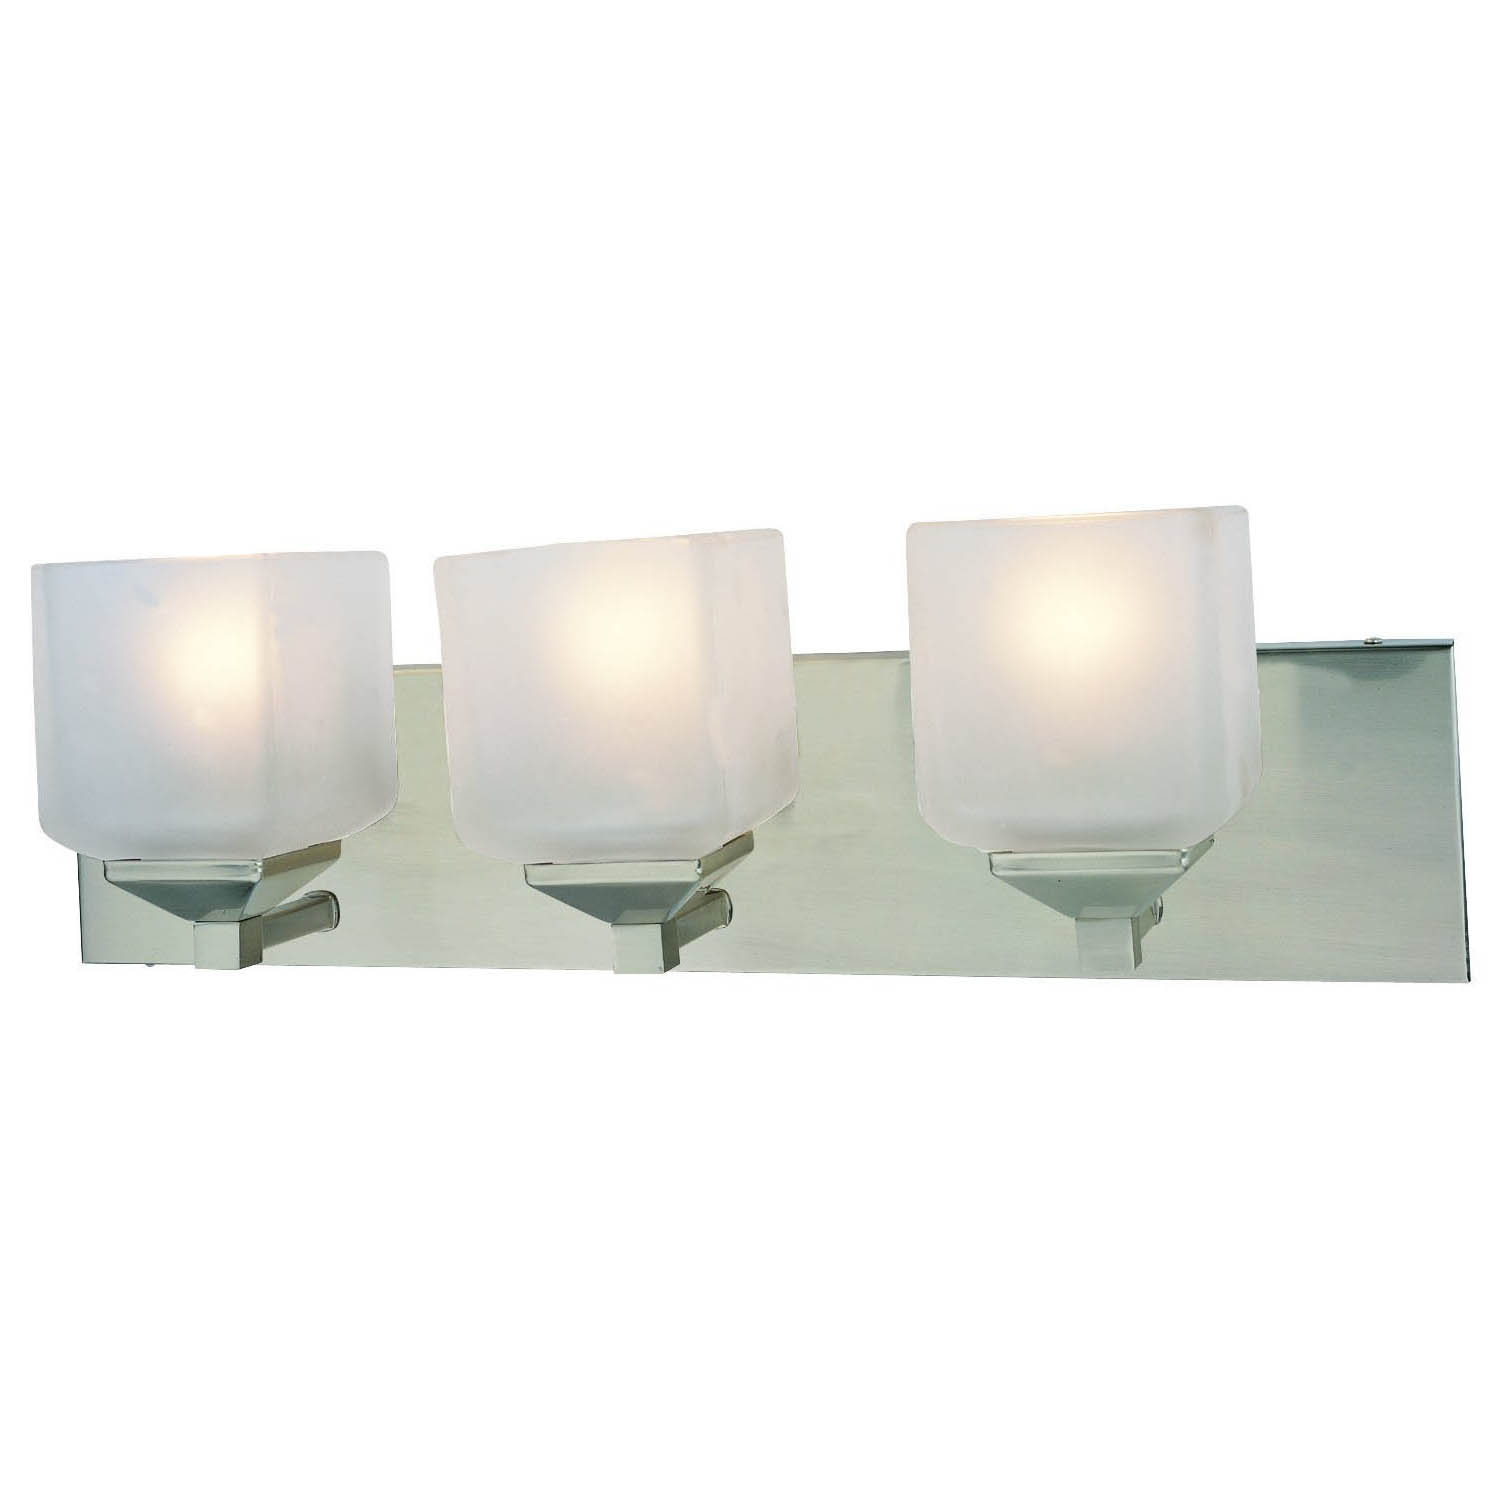 Design House Syrah 3 Light Vanity Lighting in Satin Nickel - 506493